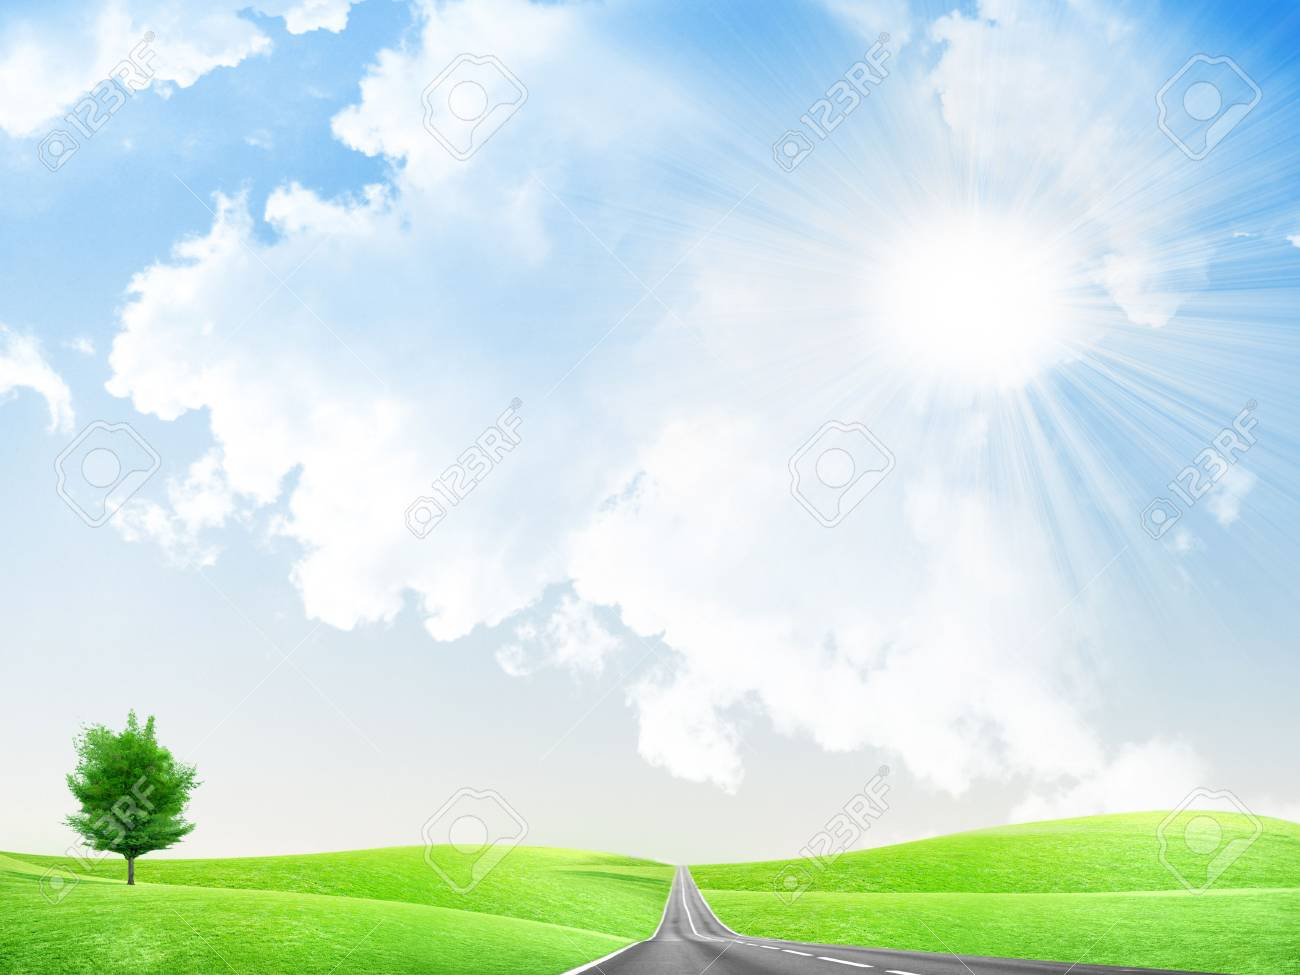 abstract landscape with road and blue sky Stock Photo - 4479864